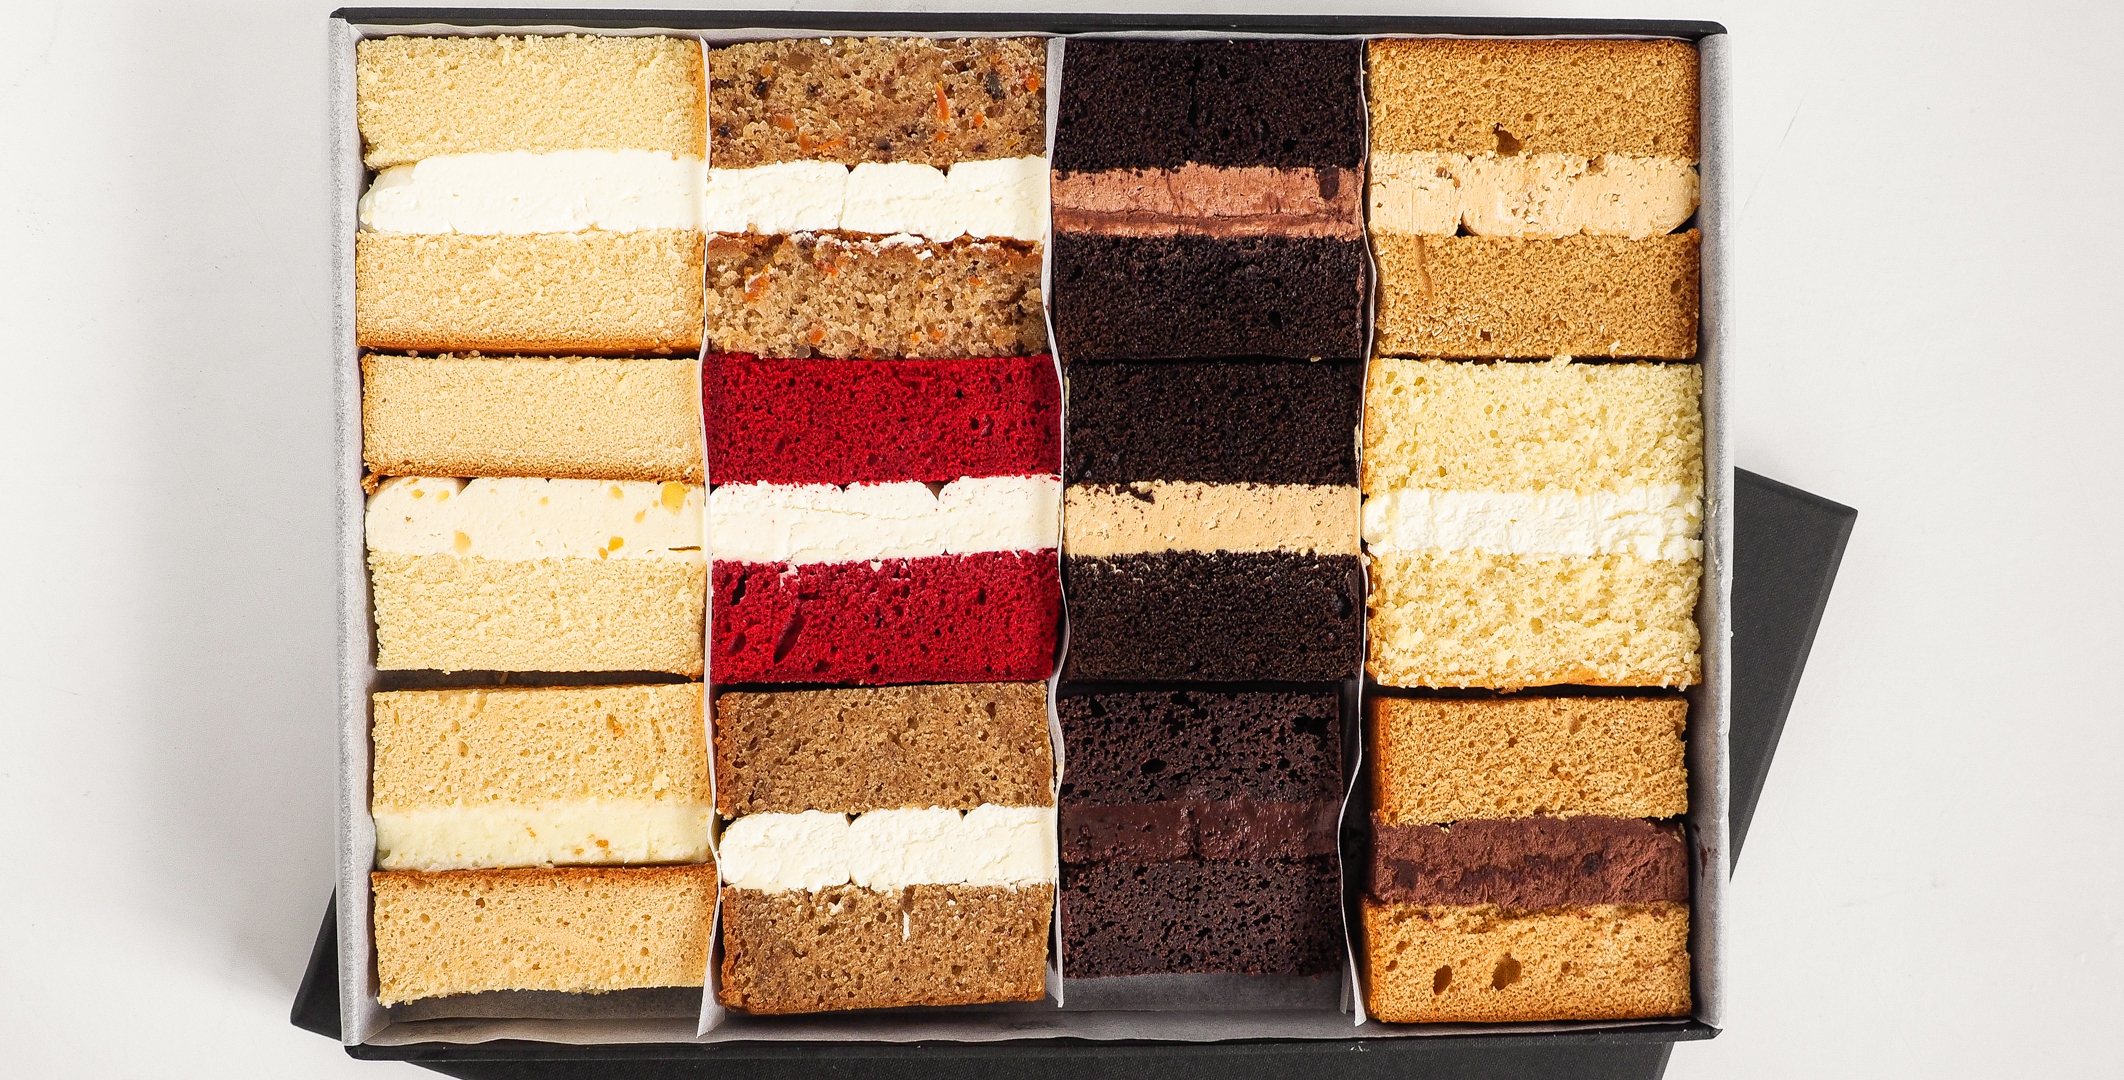 Image: Our cake tasting pack, the most enjoyable way to choose your favourite cake flavour.